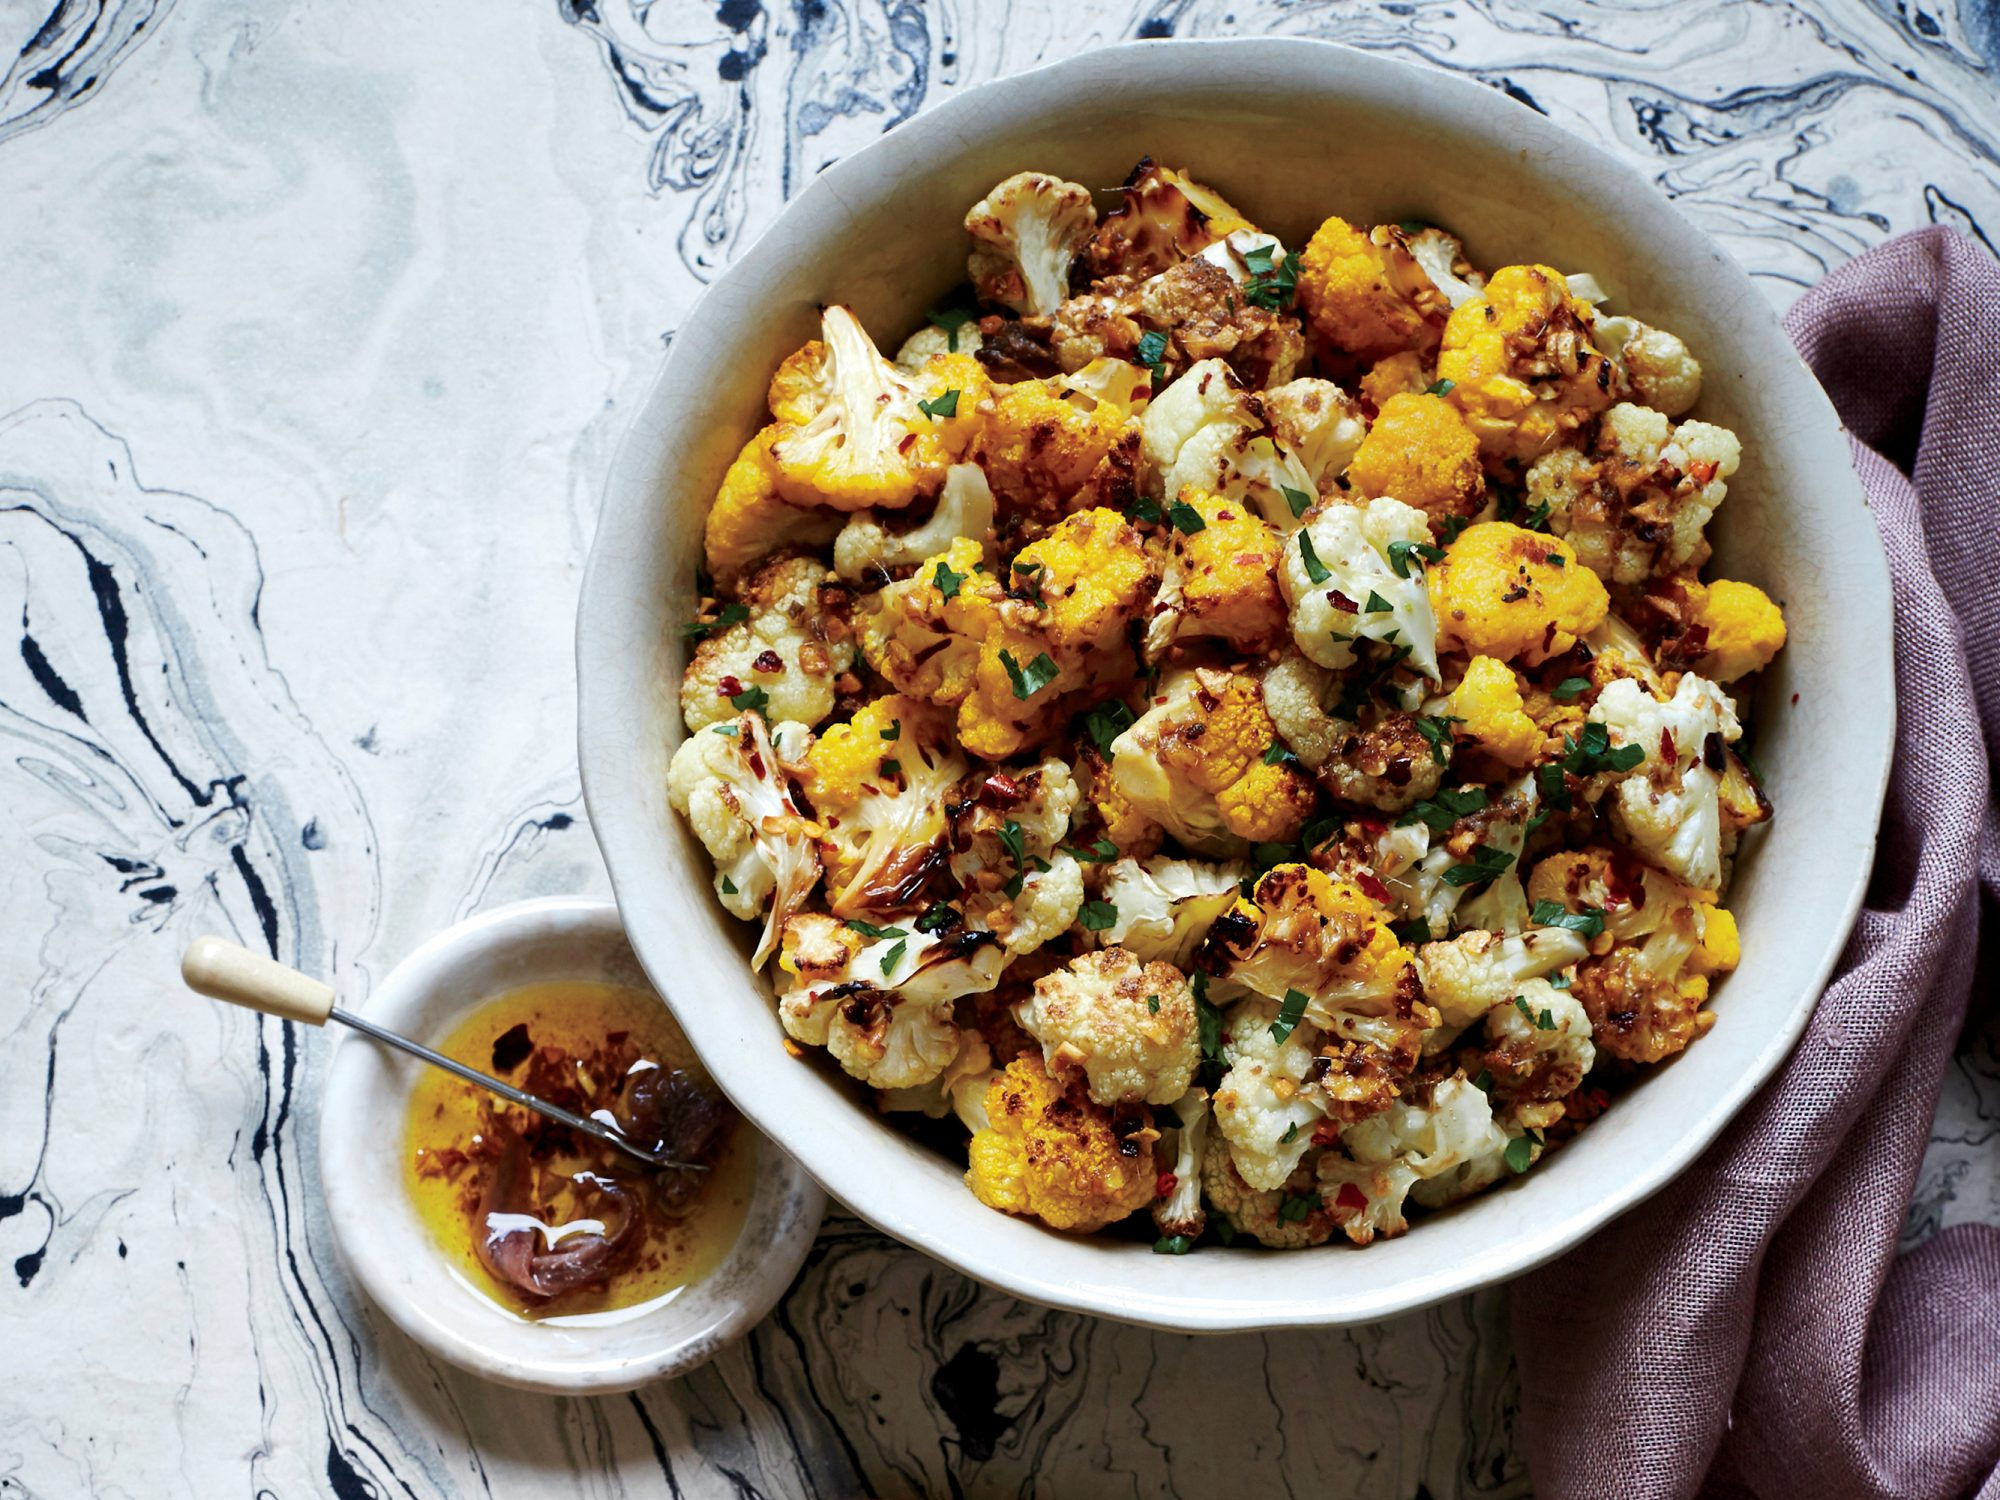 Roasted Cauliflower with Anchovy Sauce